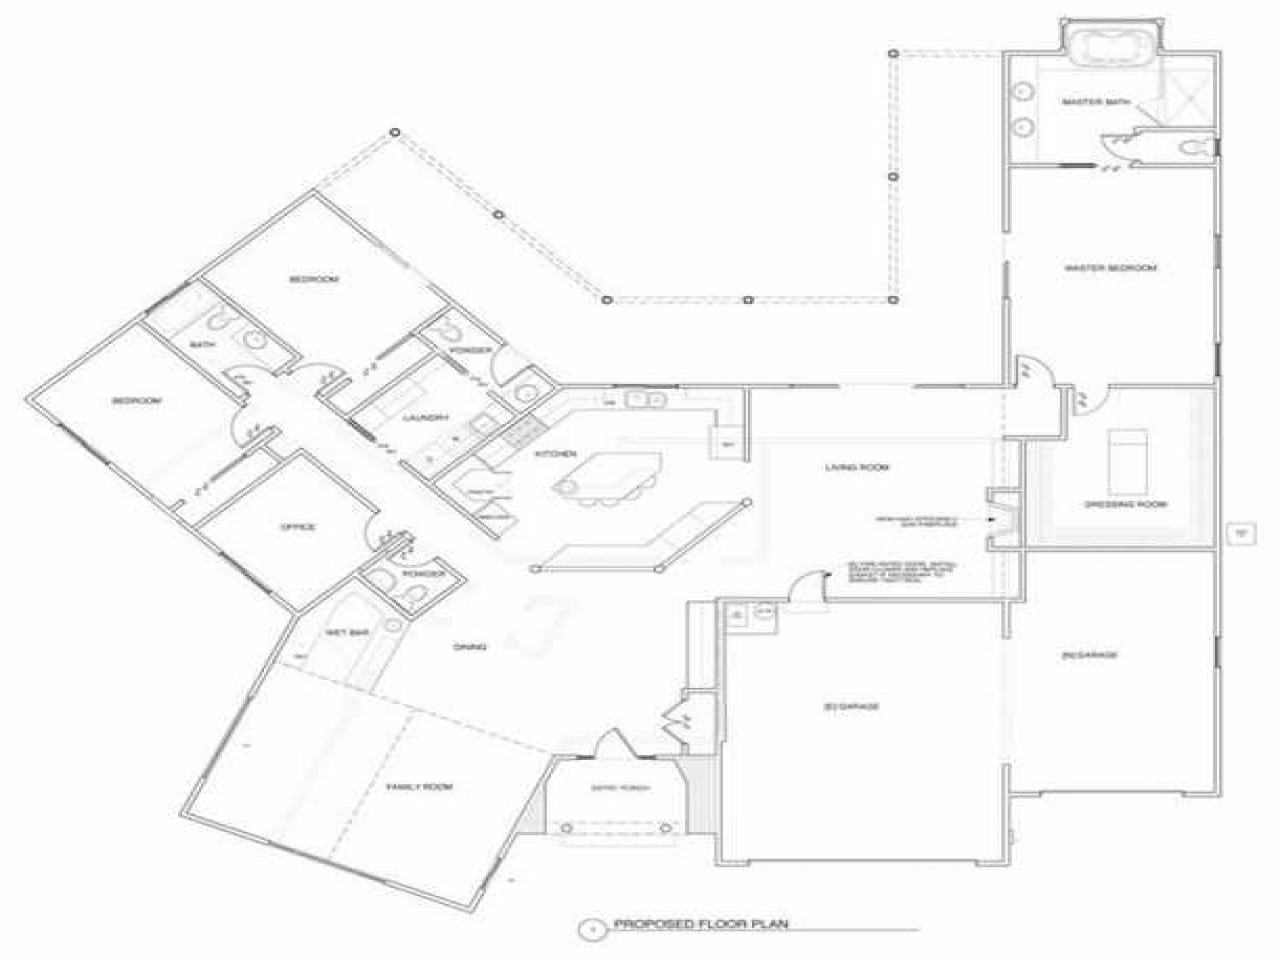 Ranch house plans with open floor plan ranch house plans for Ranch home plans with loft